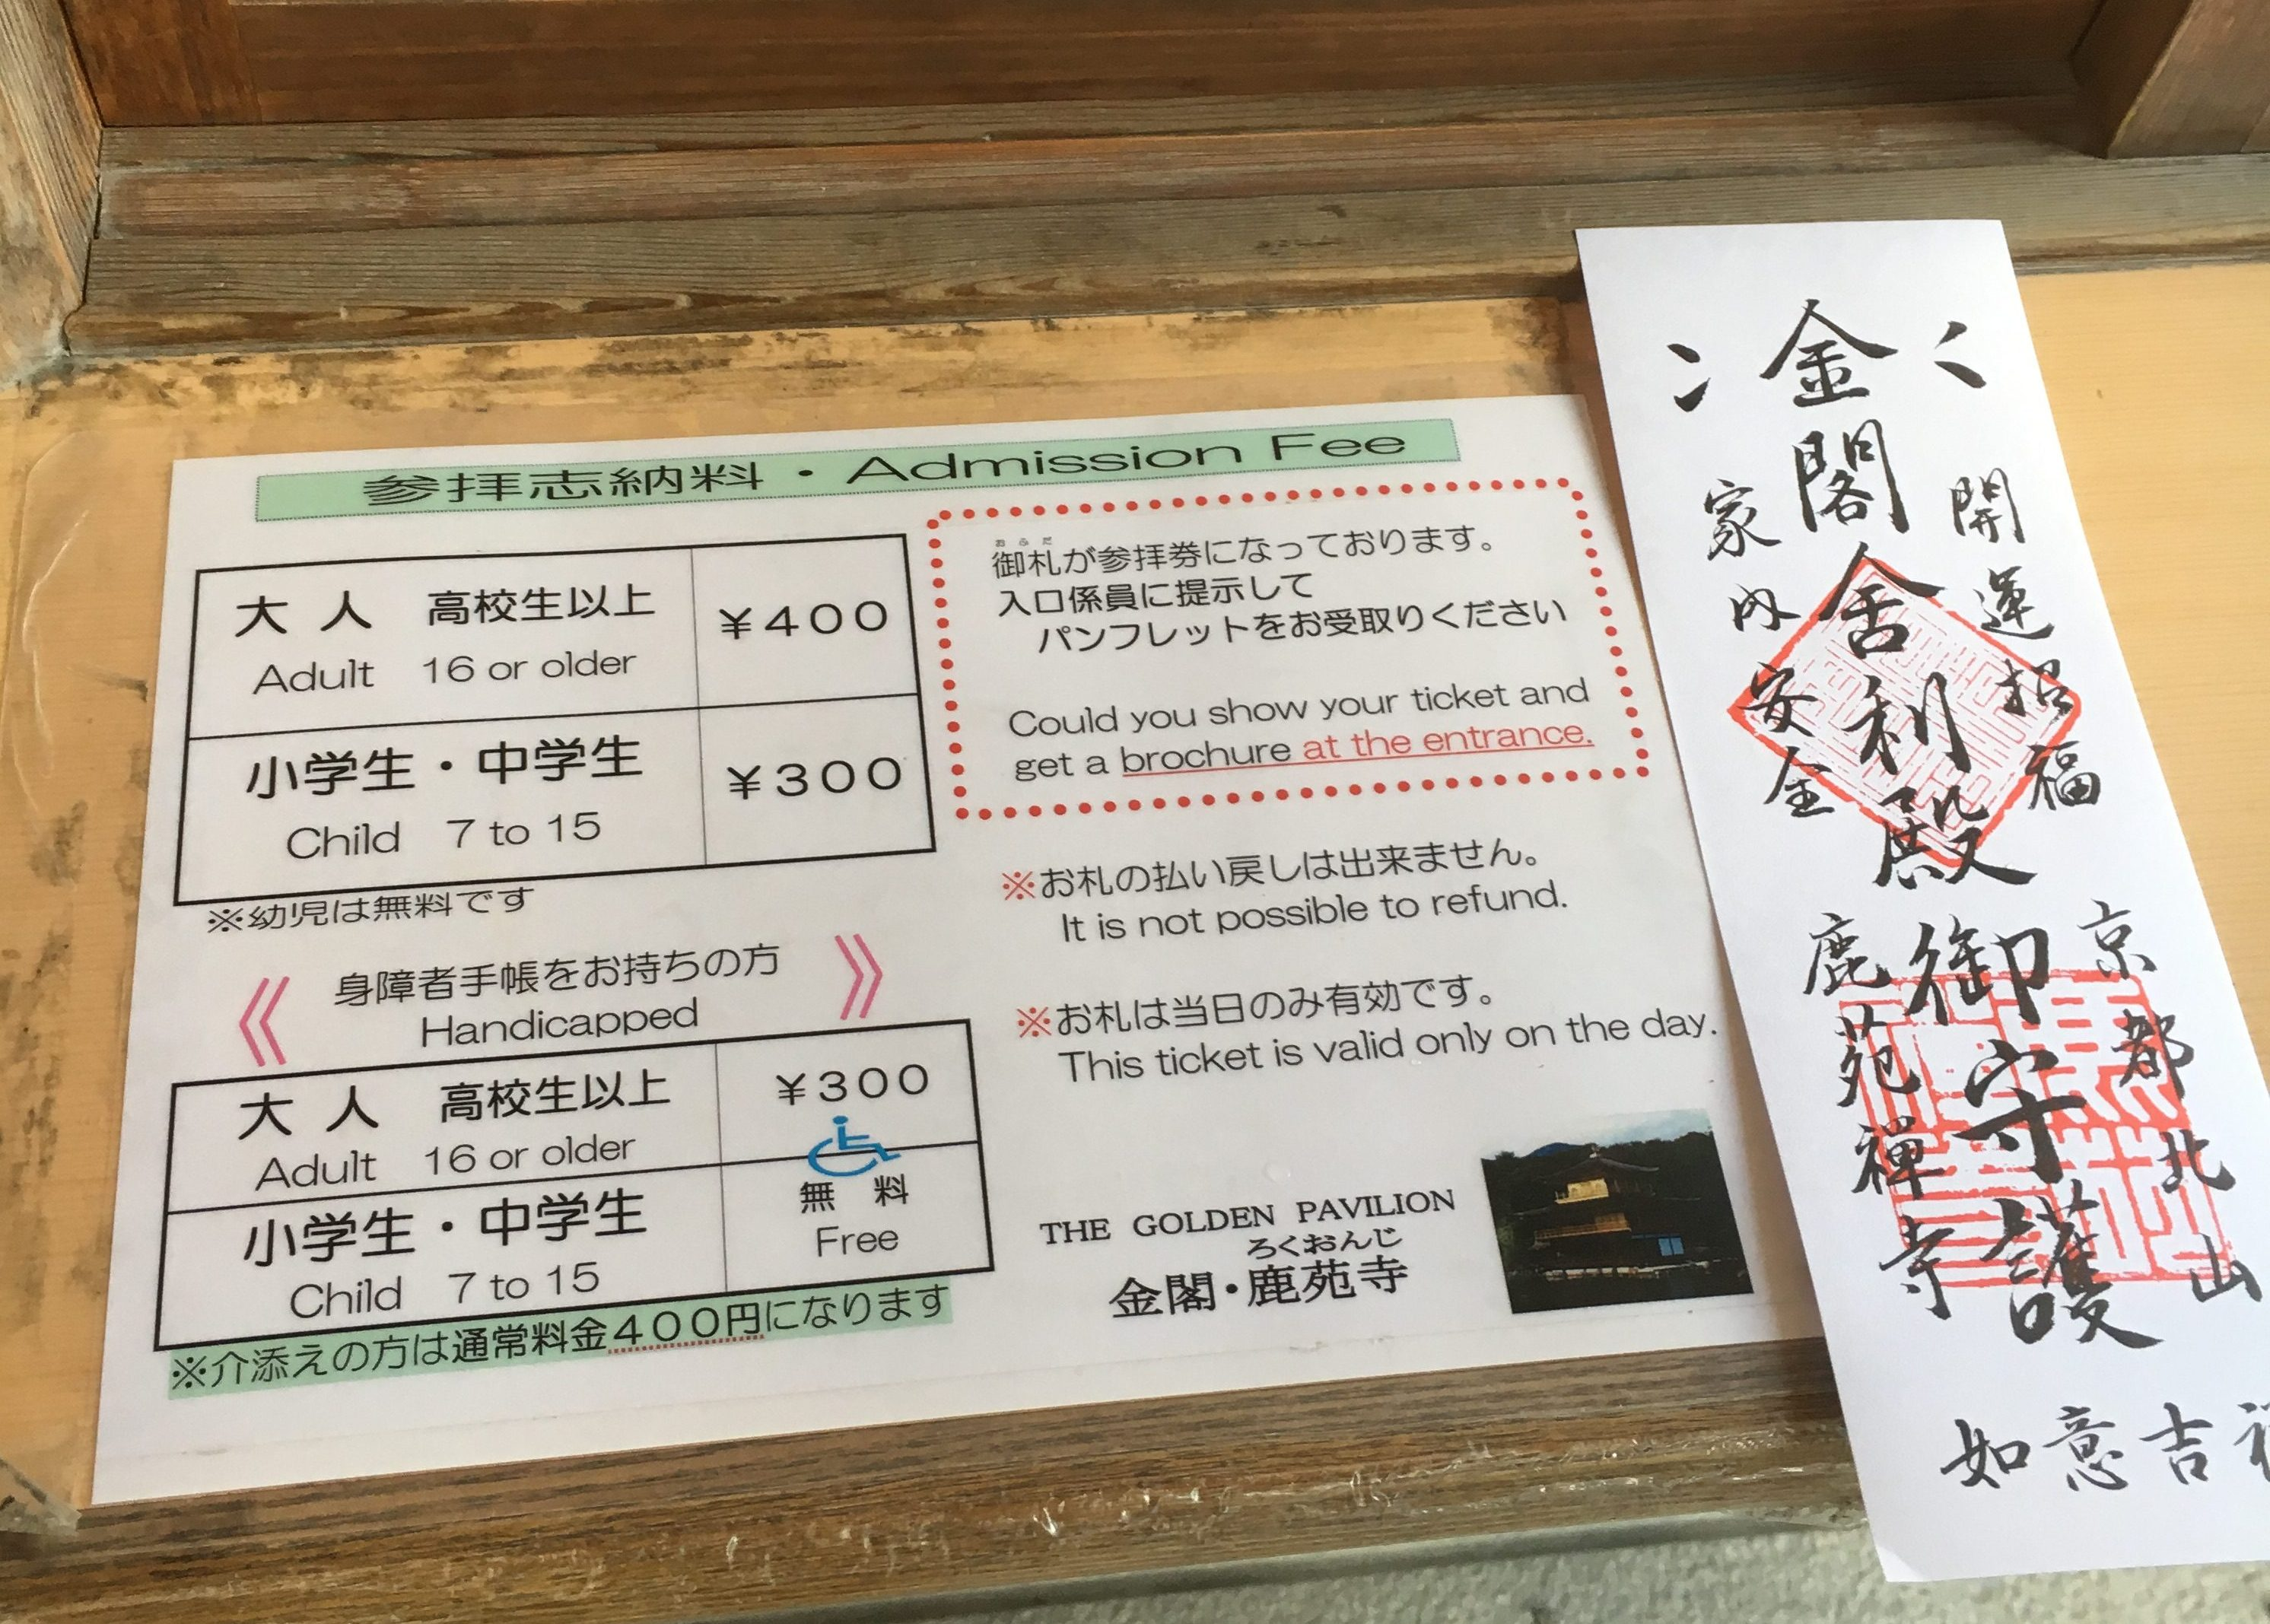 Entrance ticket of the kinkaku-ji